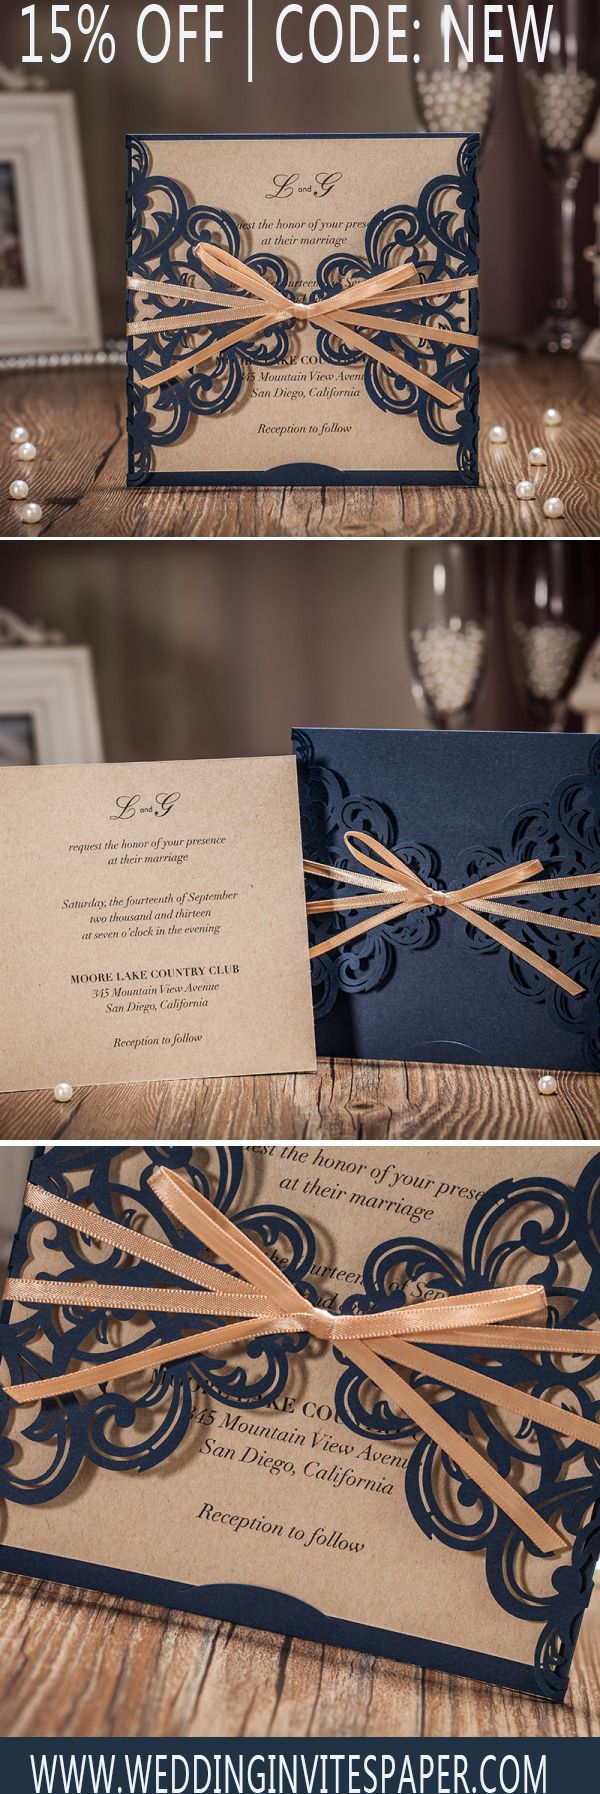 zazzle wedding invitations promo code%0A Elegant Navy Blue Laser Cut Wedding Invitations With Ribbon WLC